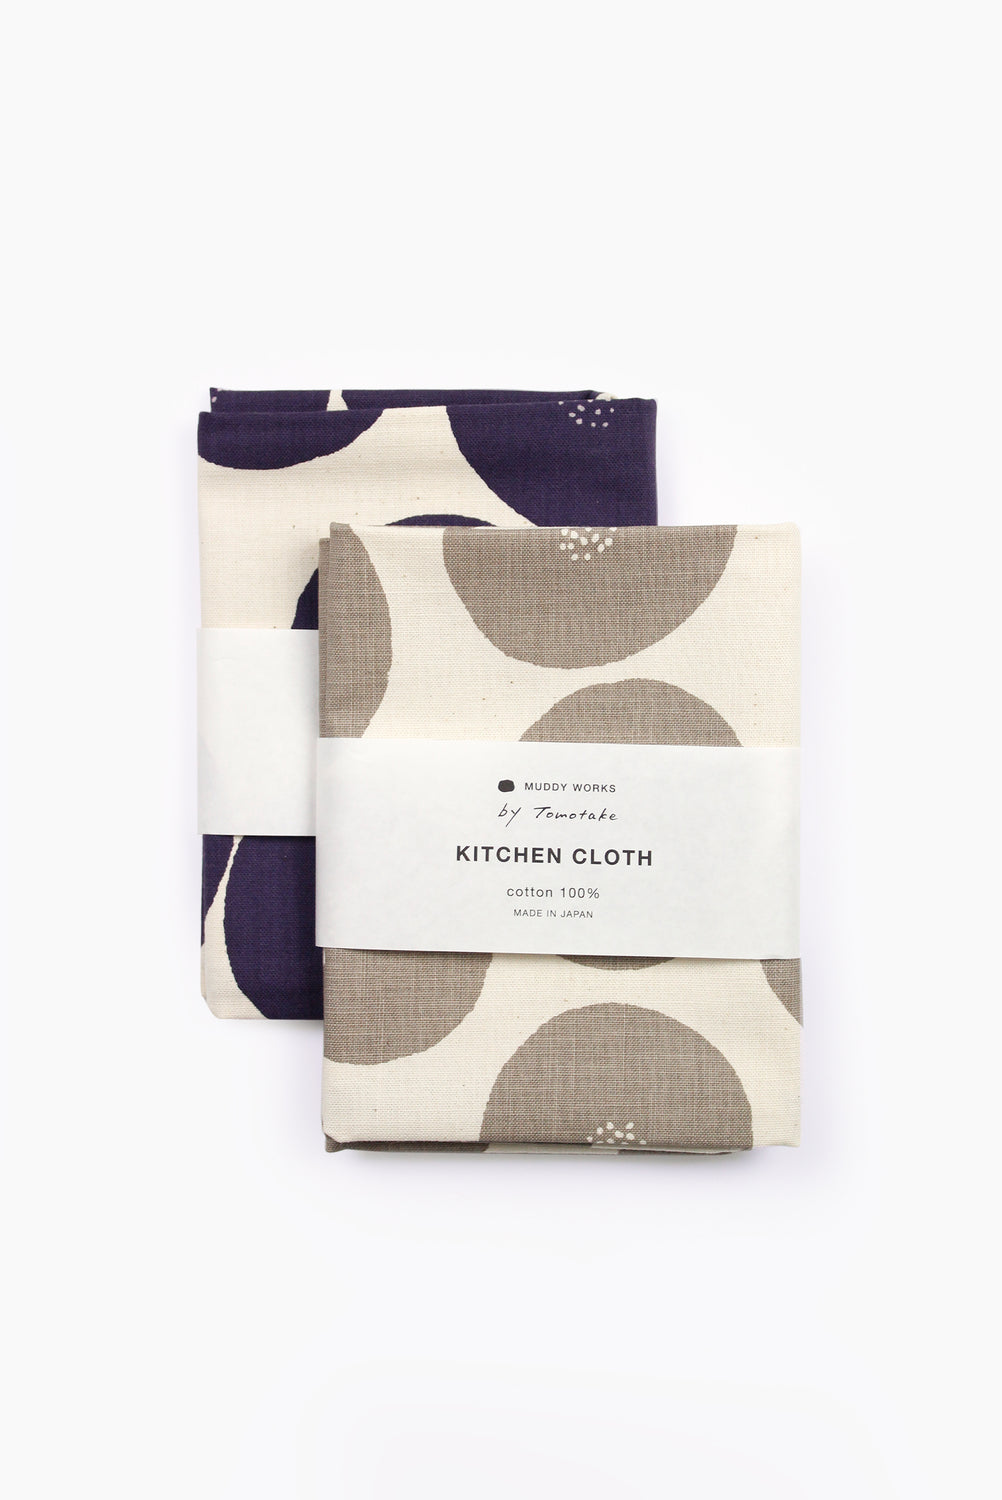 Cotton Kitchen Cloth, Anpan